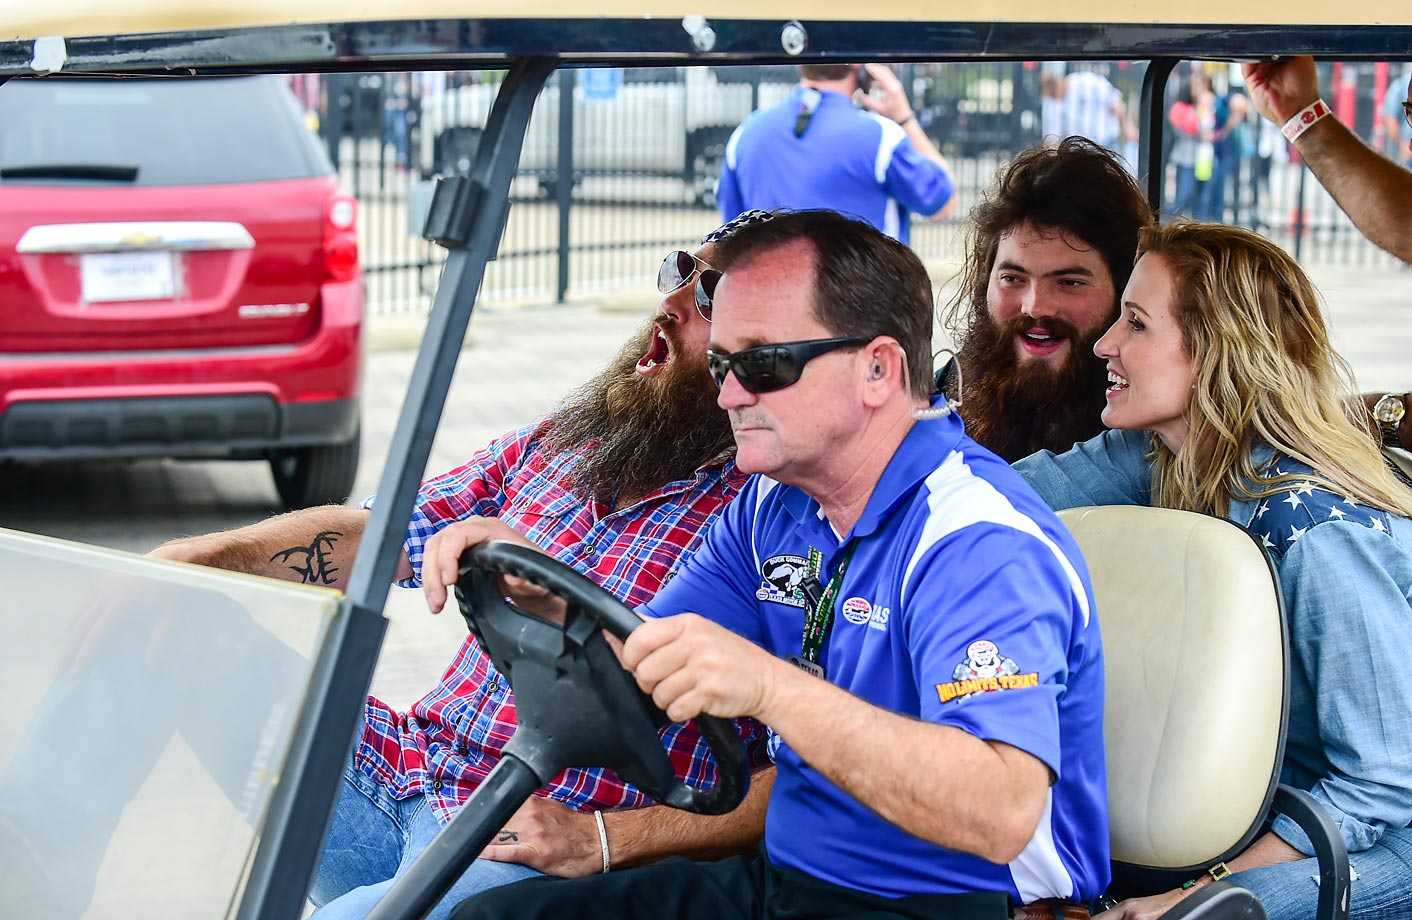 Willie, left, and Korie Robertson share a laugh on a golf cart while riding around the grounds at the Duck Commander 500 at the Texas Motor Speedway.